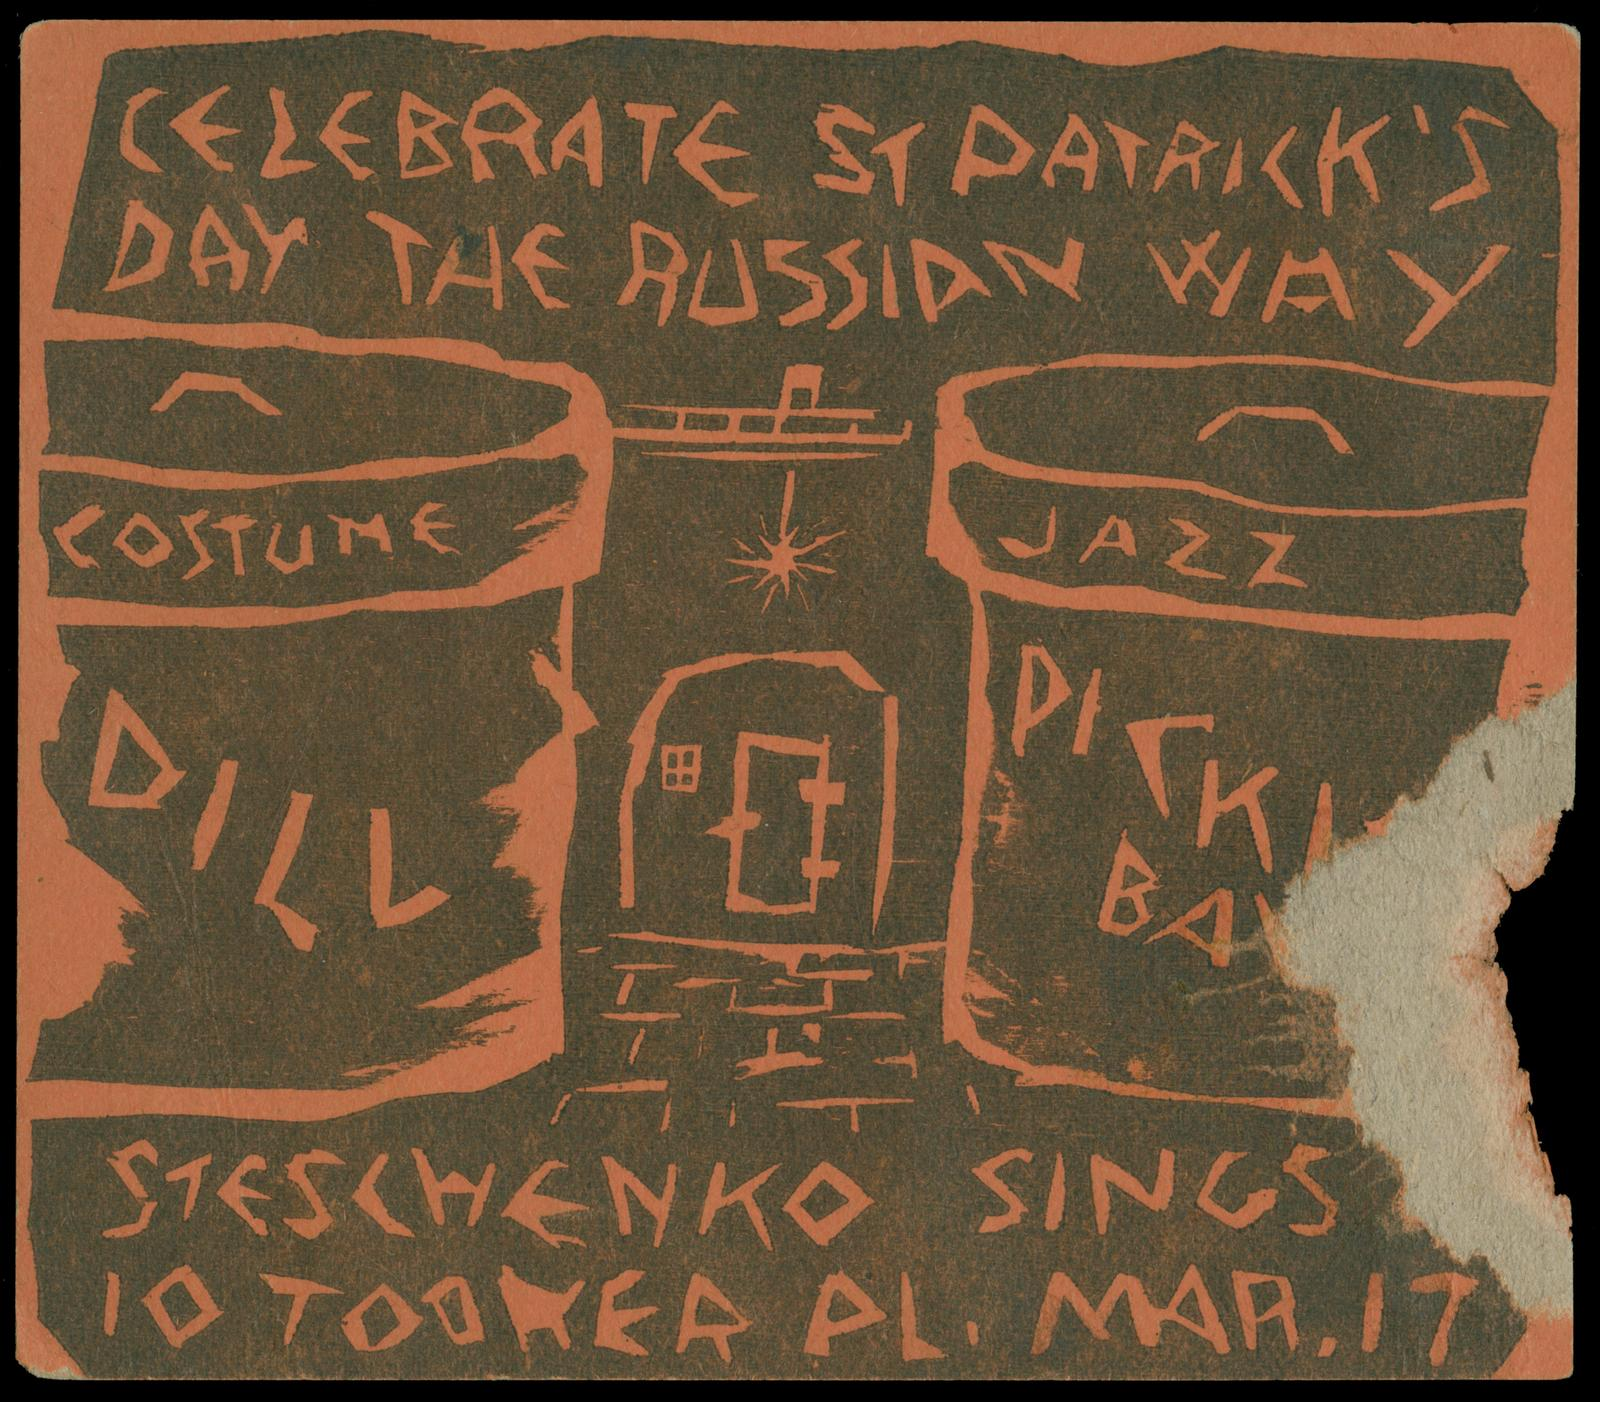 Celebrate St. Patrick's Day the Russian Way